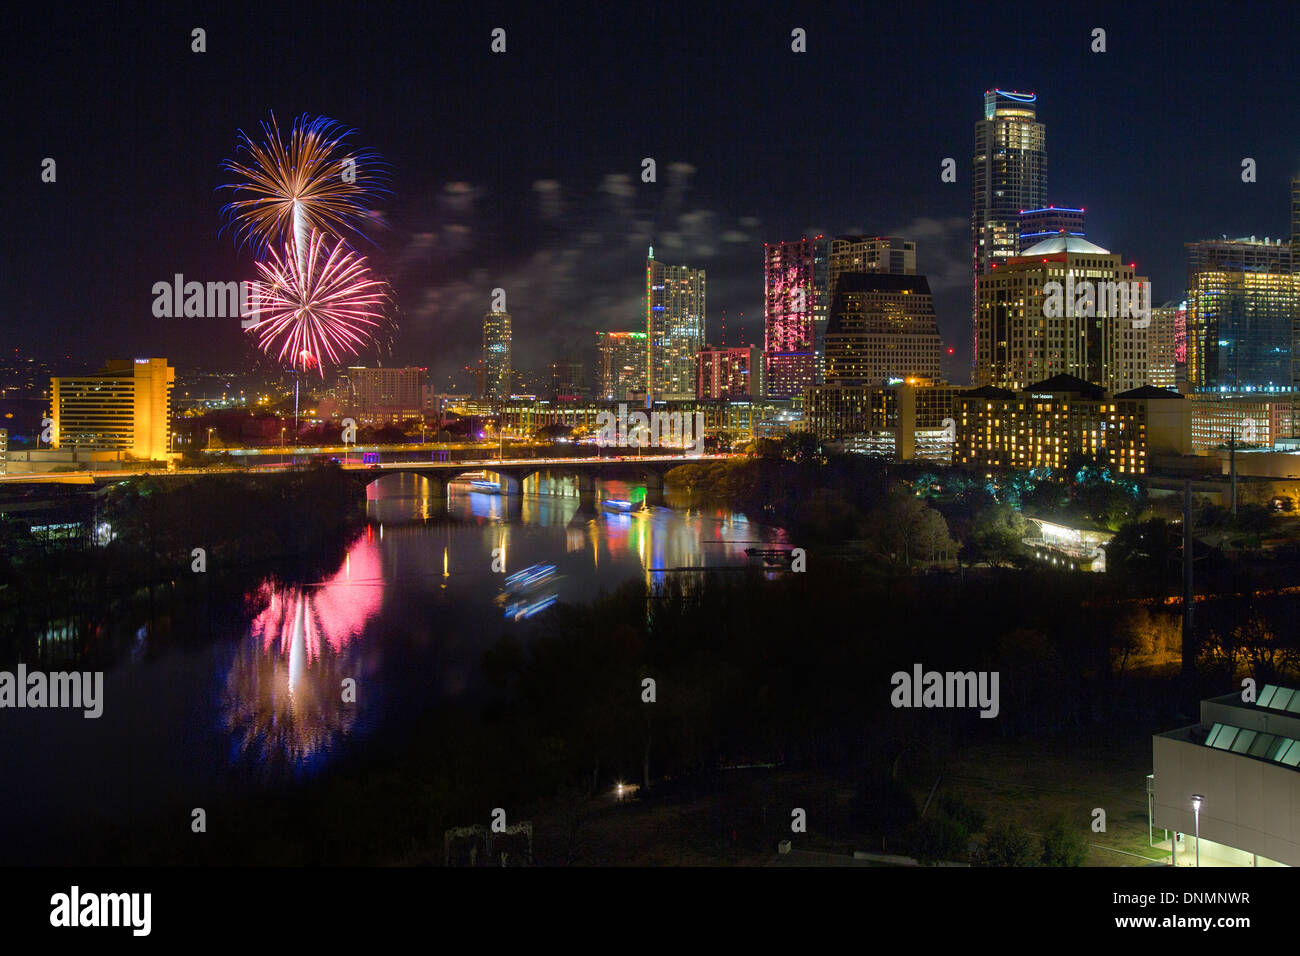 Fireworks explode over the Austin, Texas skyline on New Year's Eve as revelers say goodbye to 2013 and hello to 2014. - Stock Image